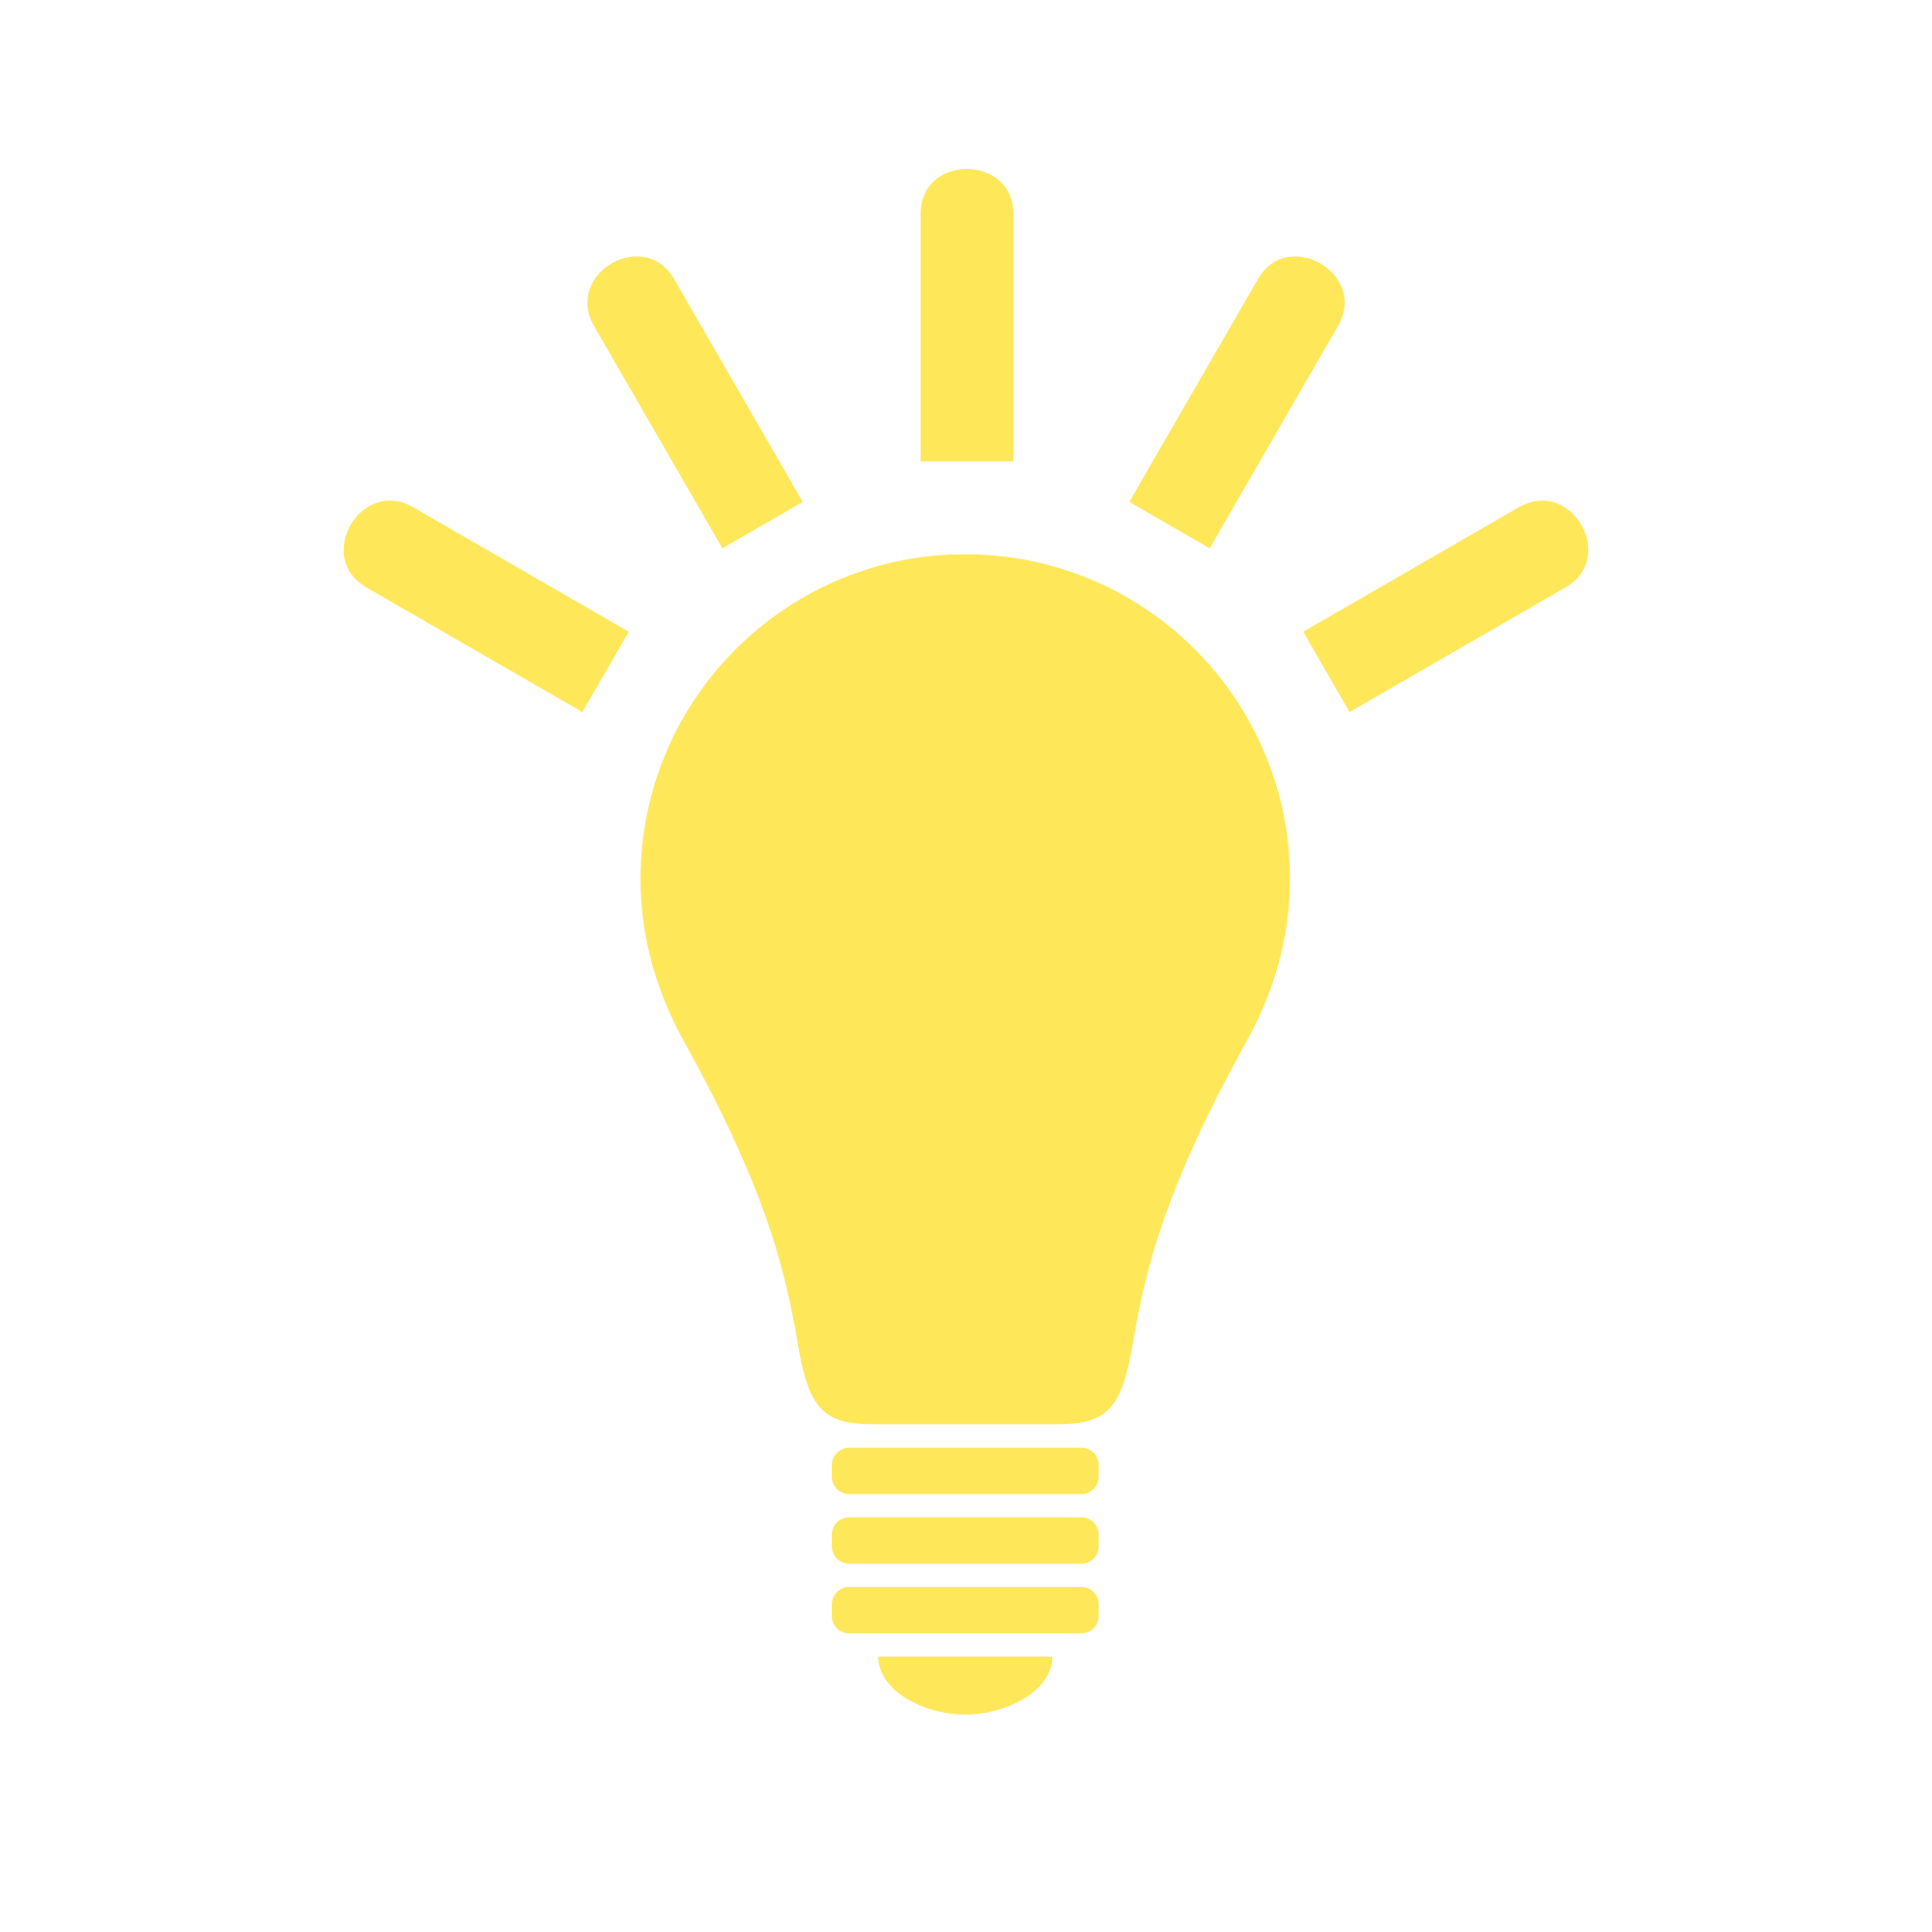 Lightbulb icon png. File light bulb yellow